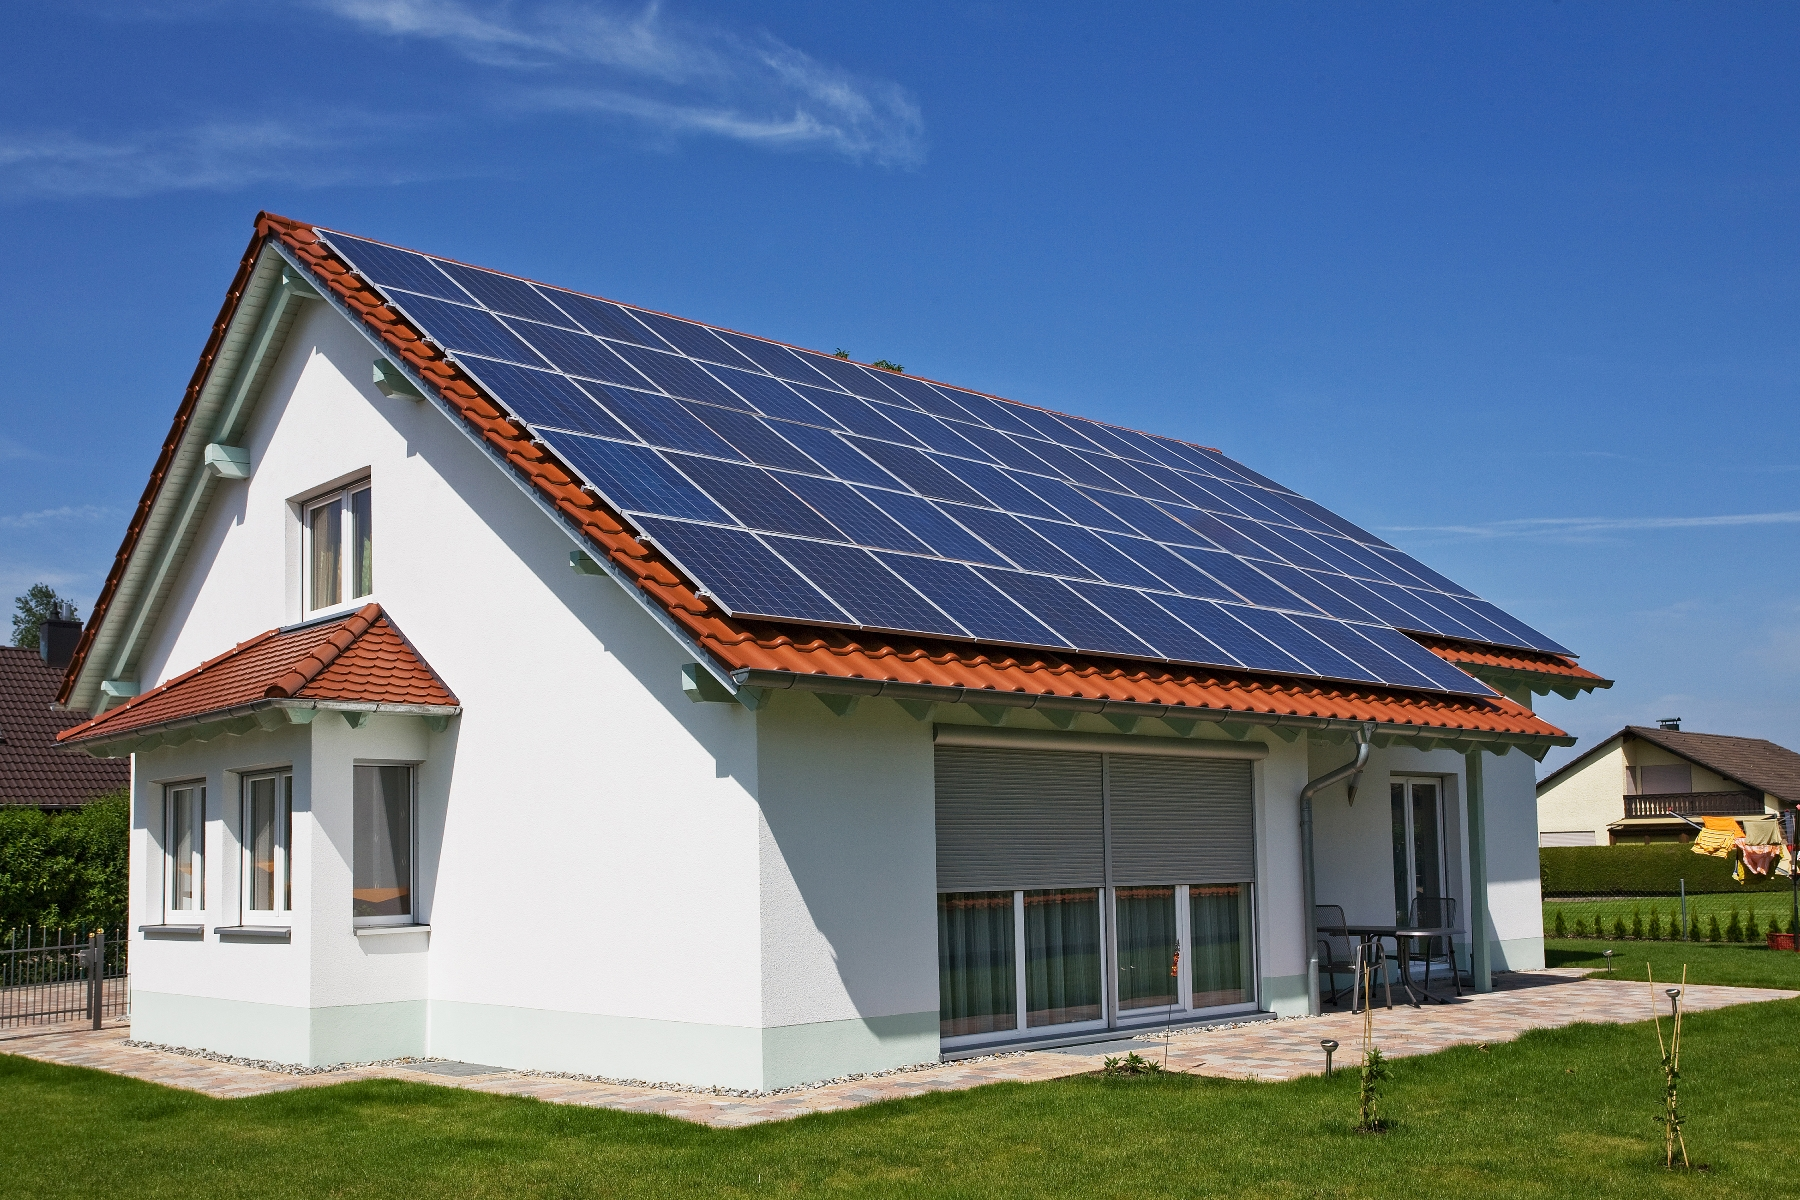 Although competition is driving prices down, solar panel systems can ...